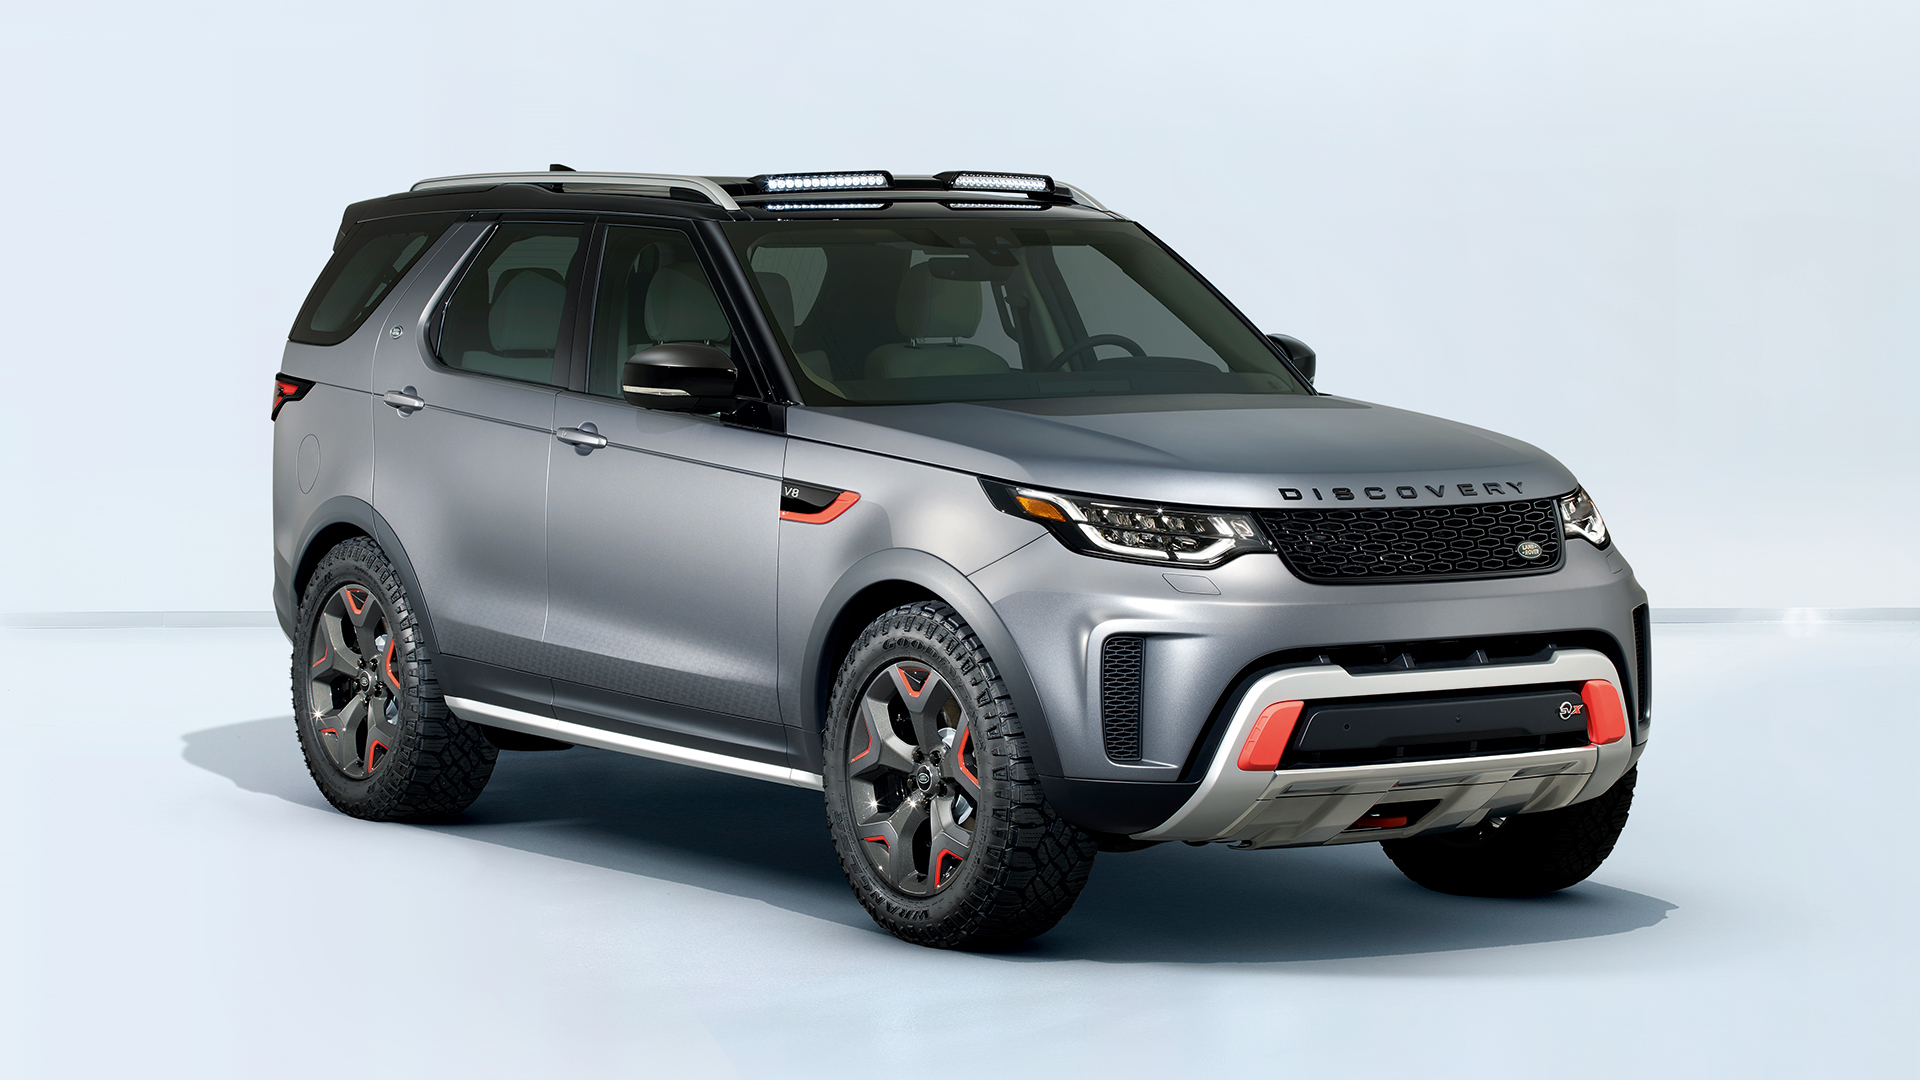 The Discovery SVX is Land Rover's ultimate off-roader